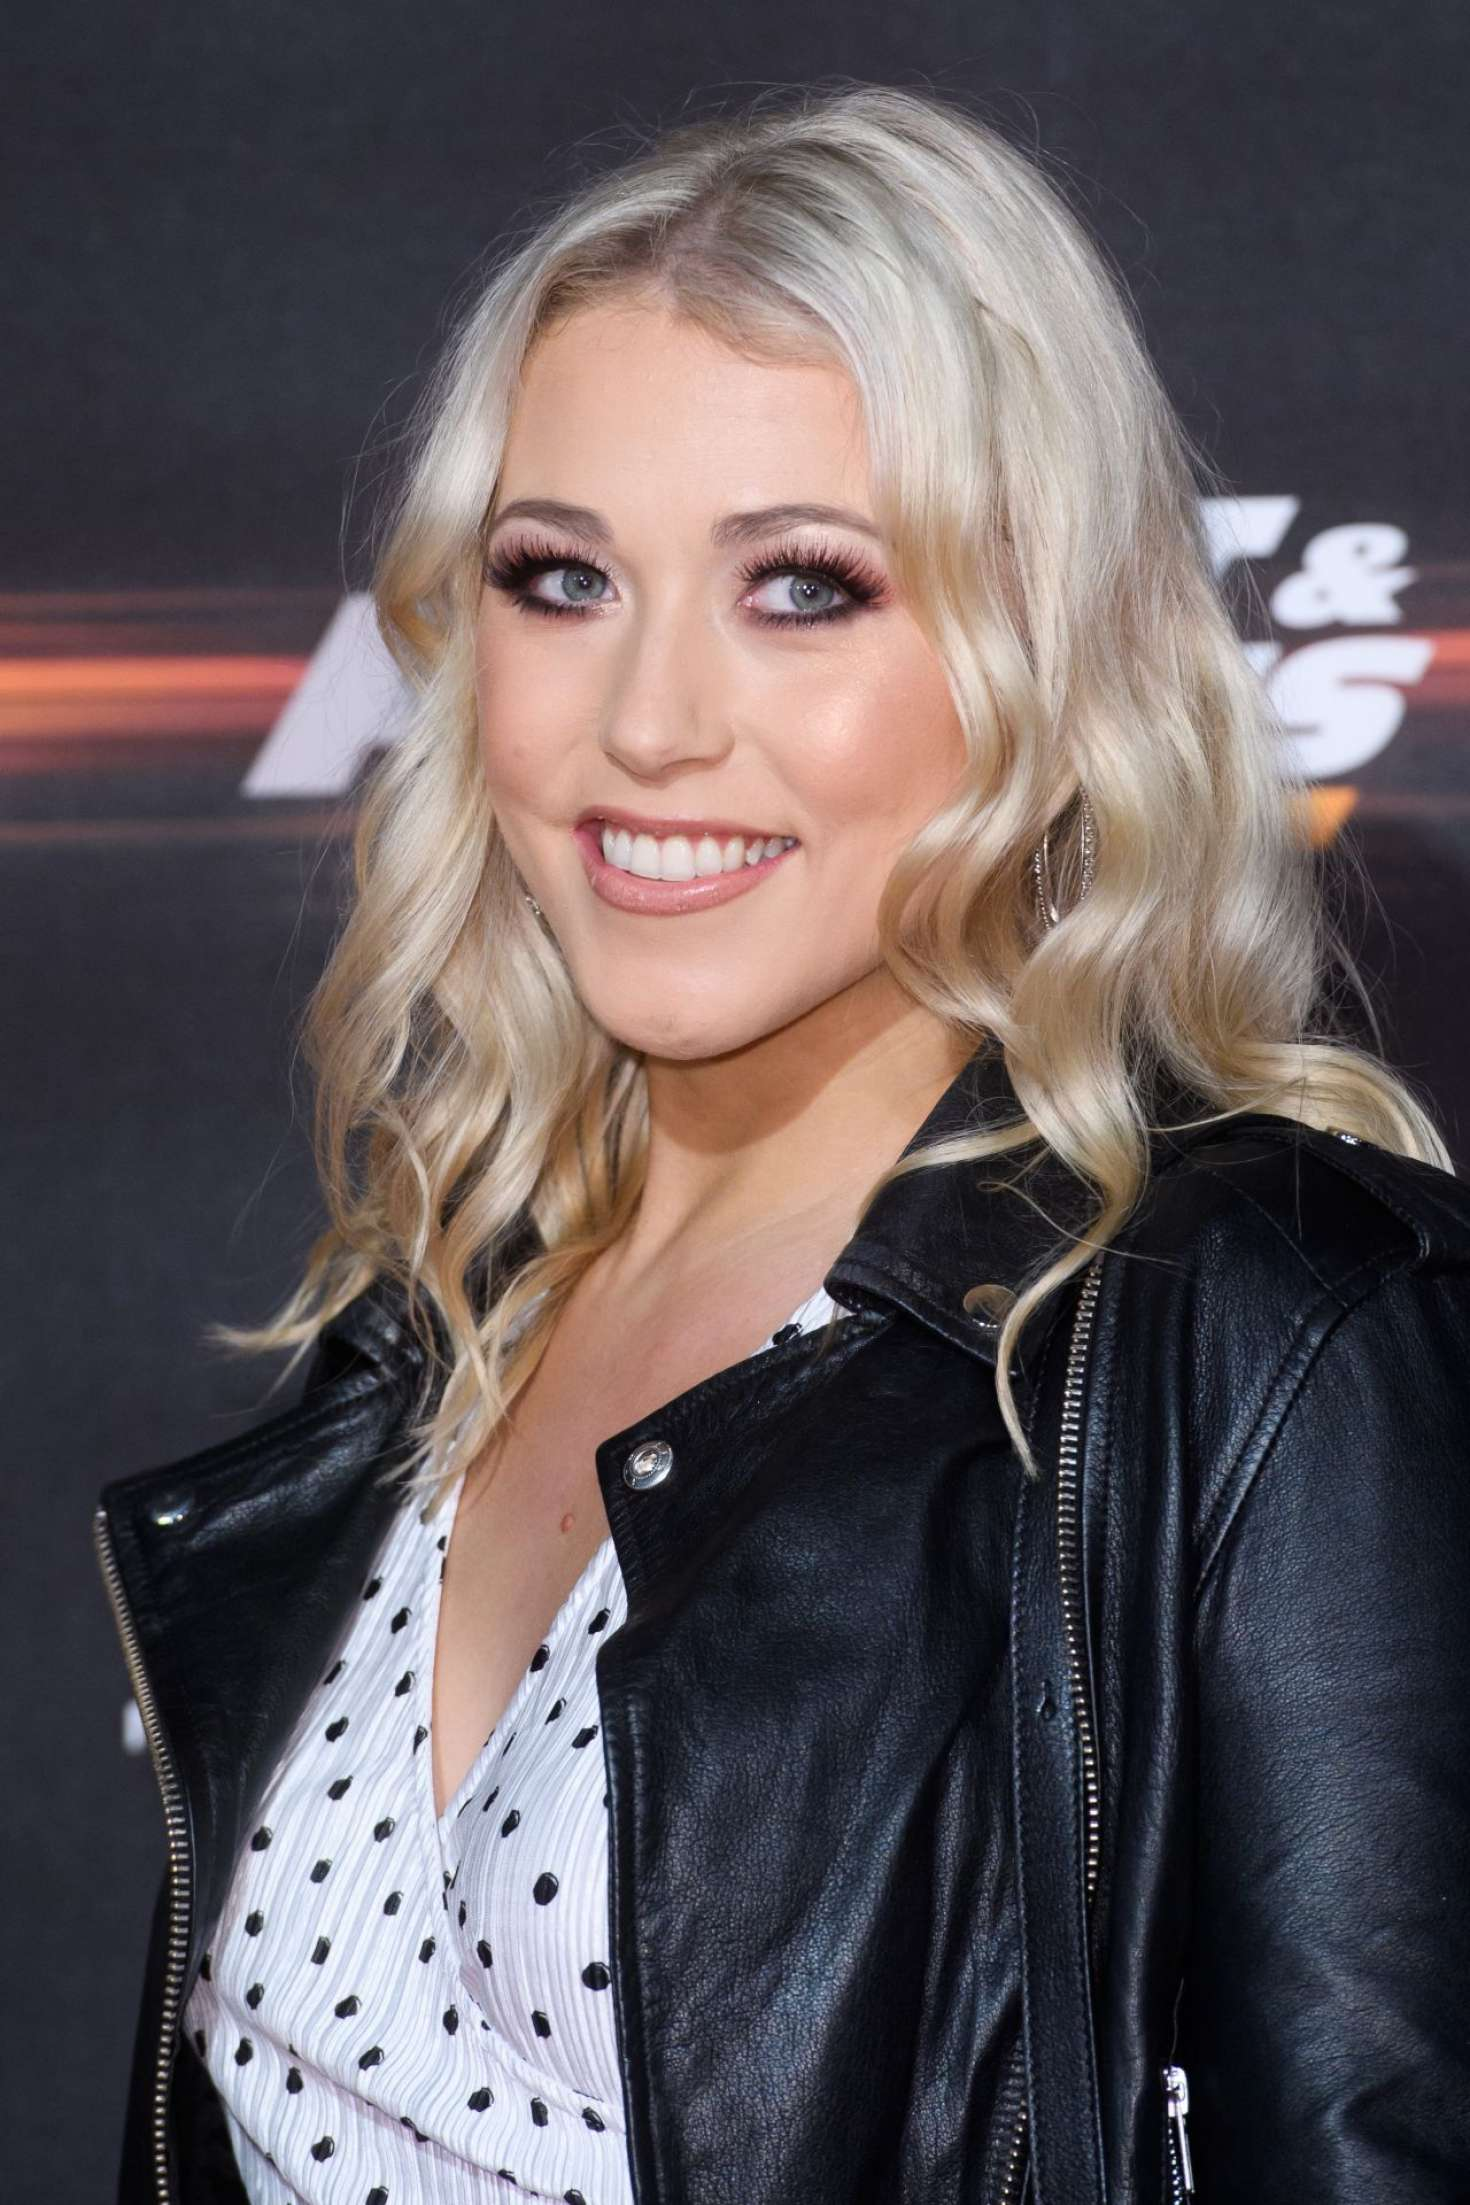 7 Amelia Lily Hairstyles 7 Amelia Lily Hairstyles new pictures